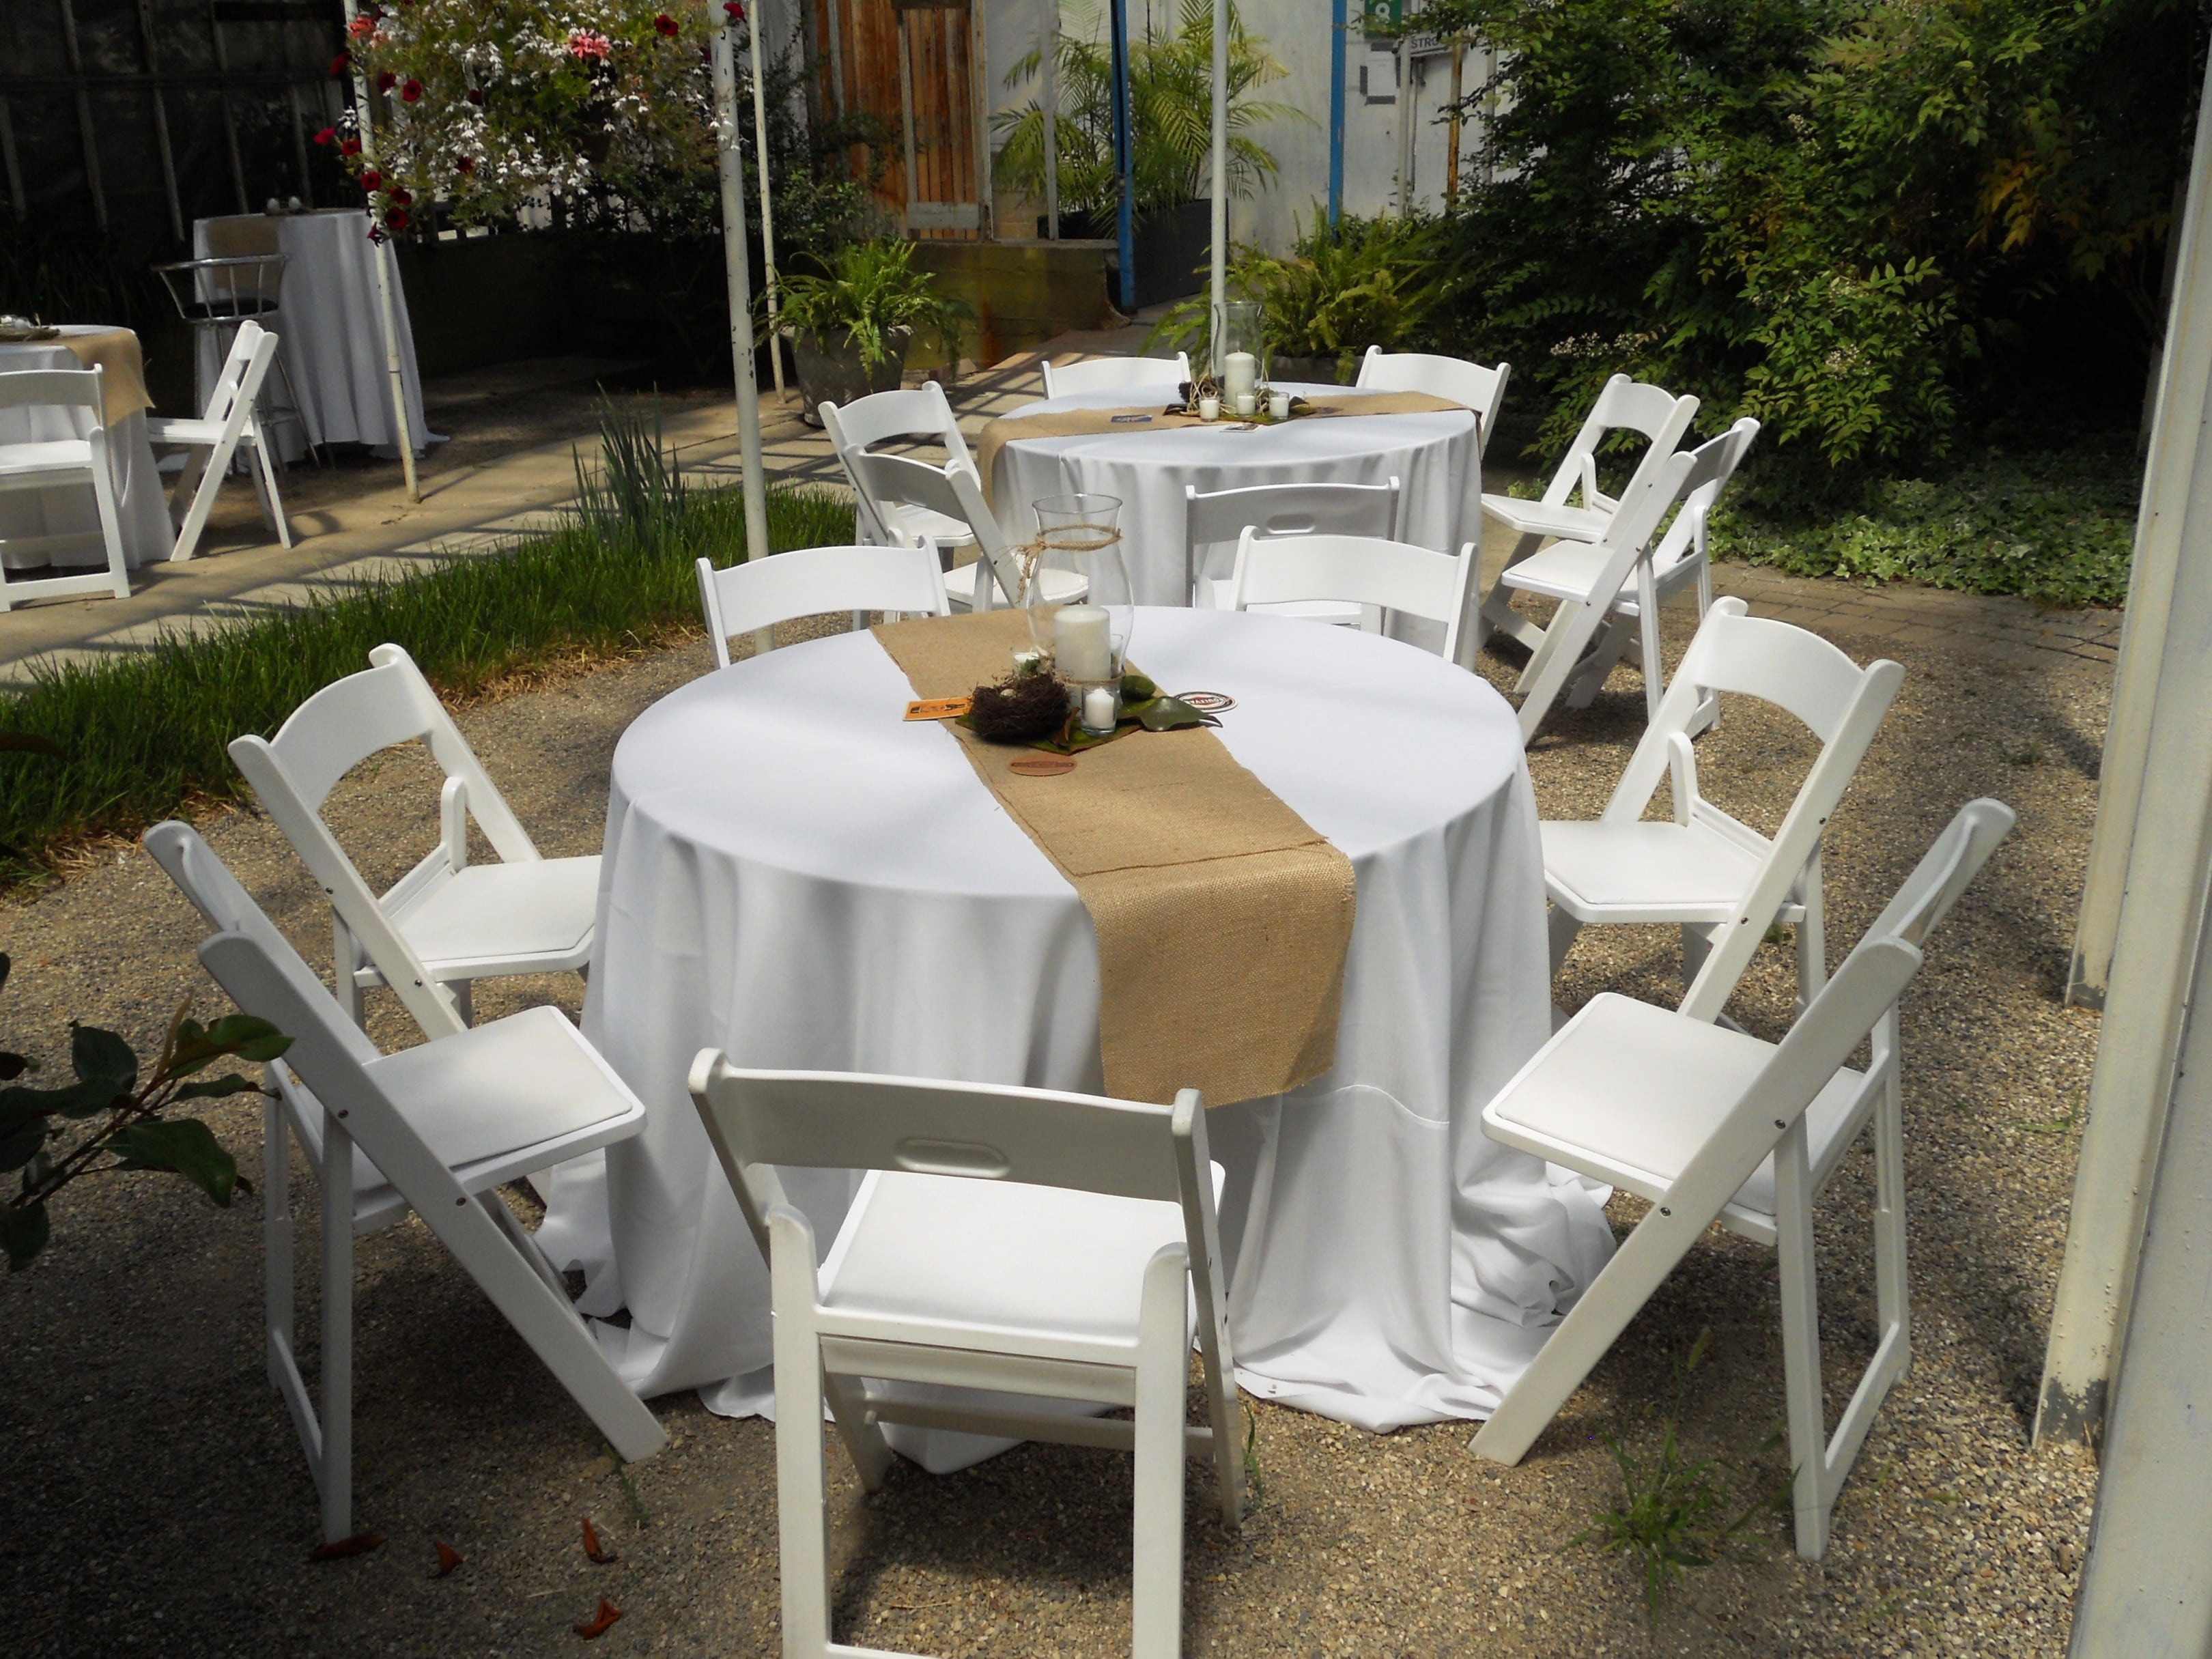 table and chair rental birmingham al does medicare cover shower chairs mi wedding event troy